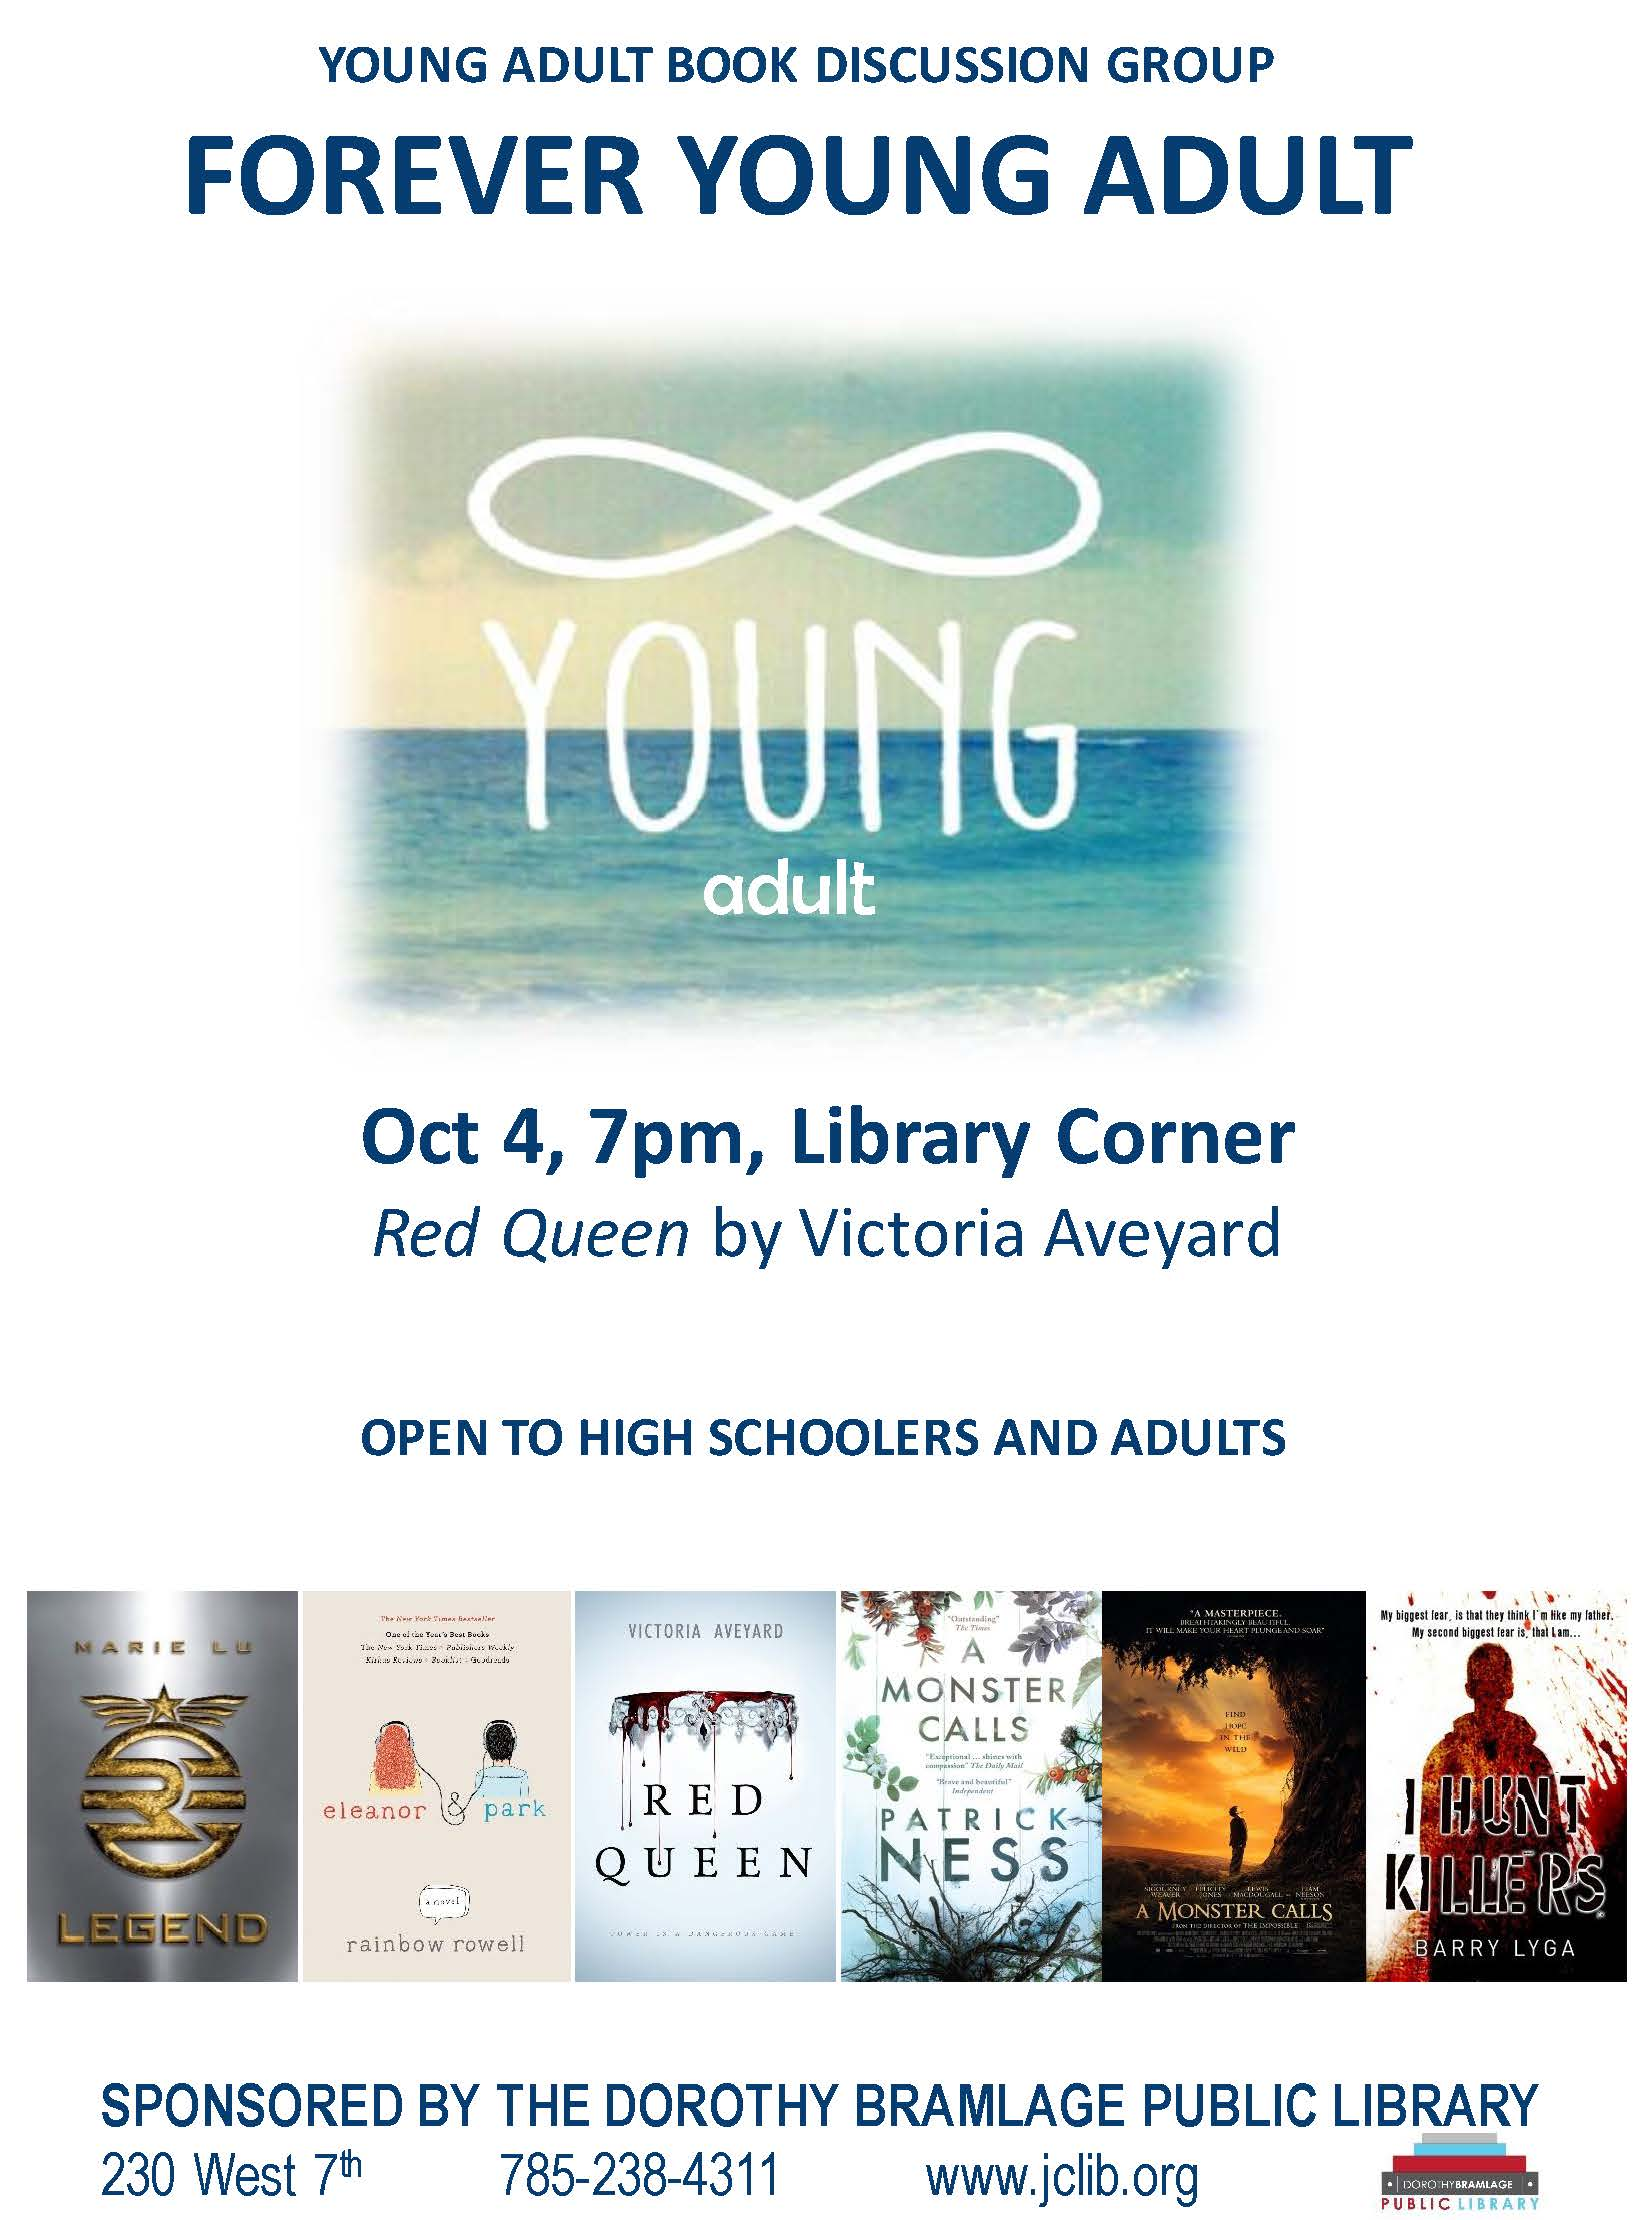 Forever Young Adult Book Flyer